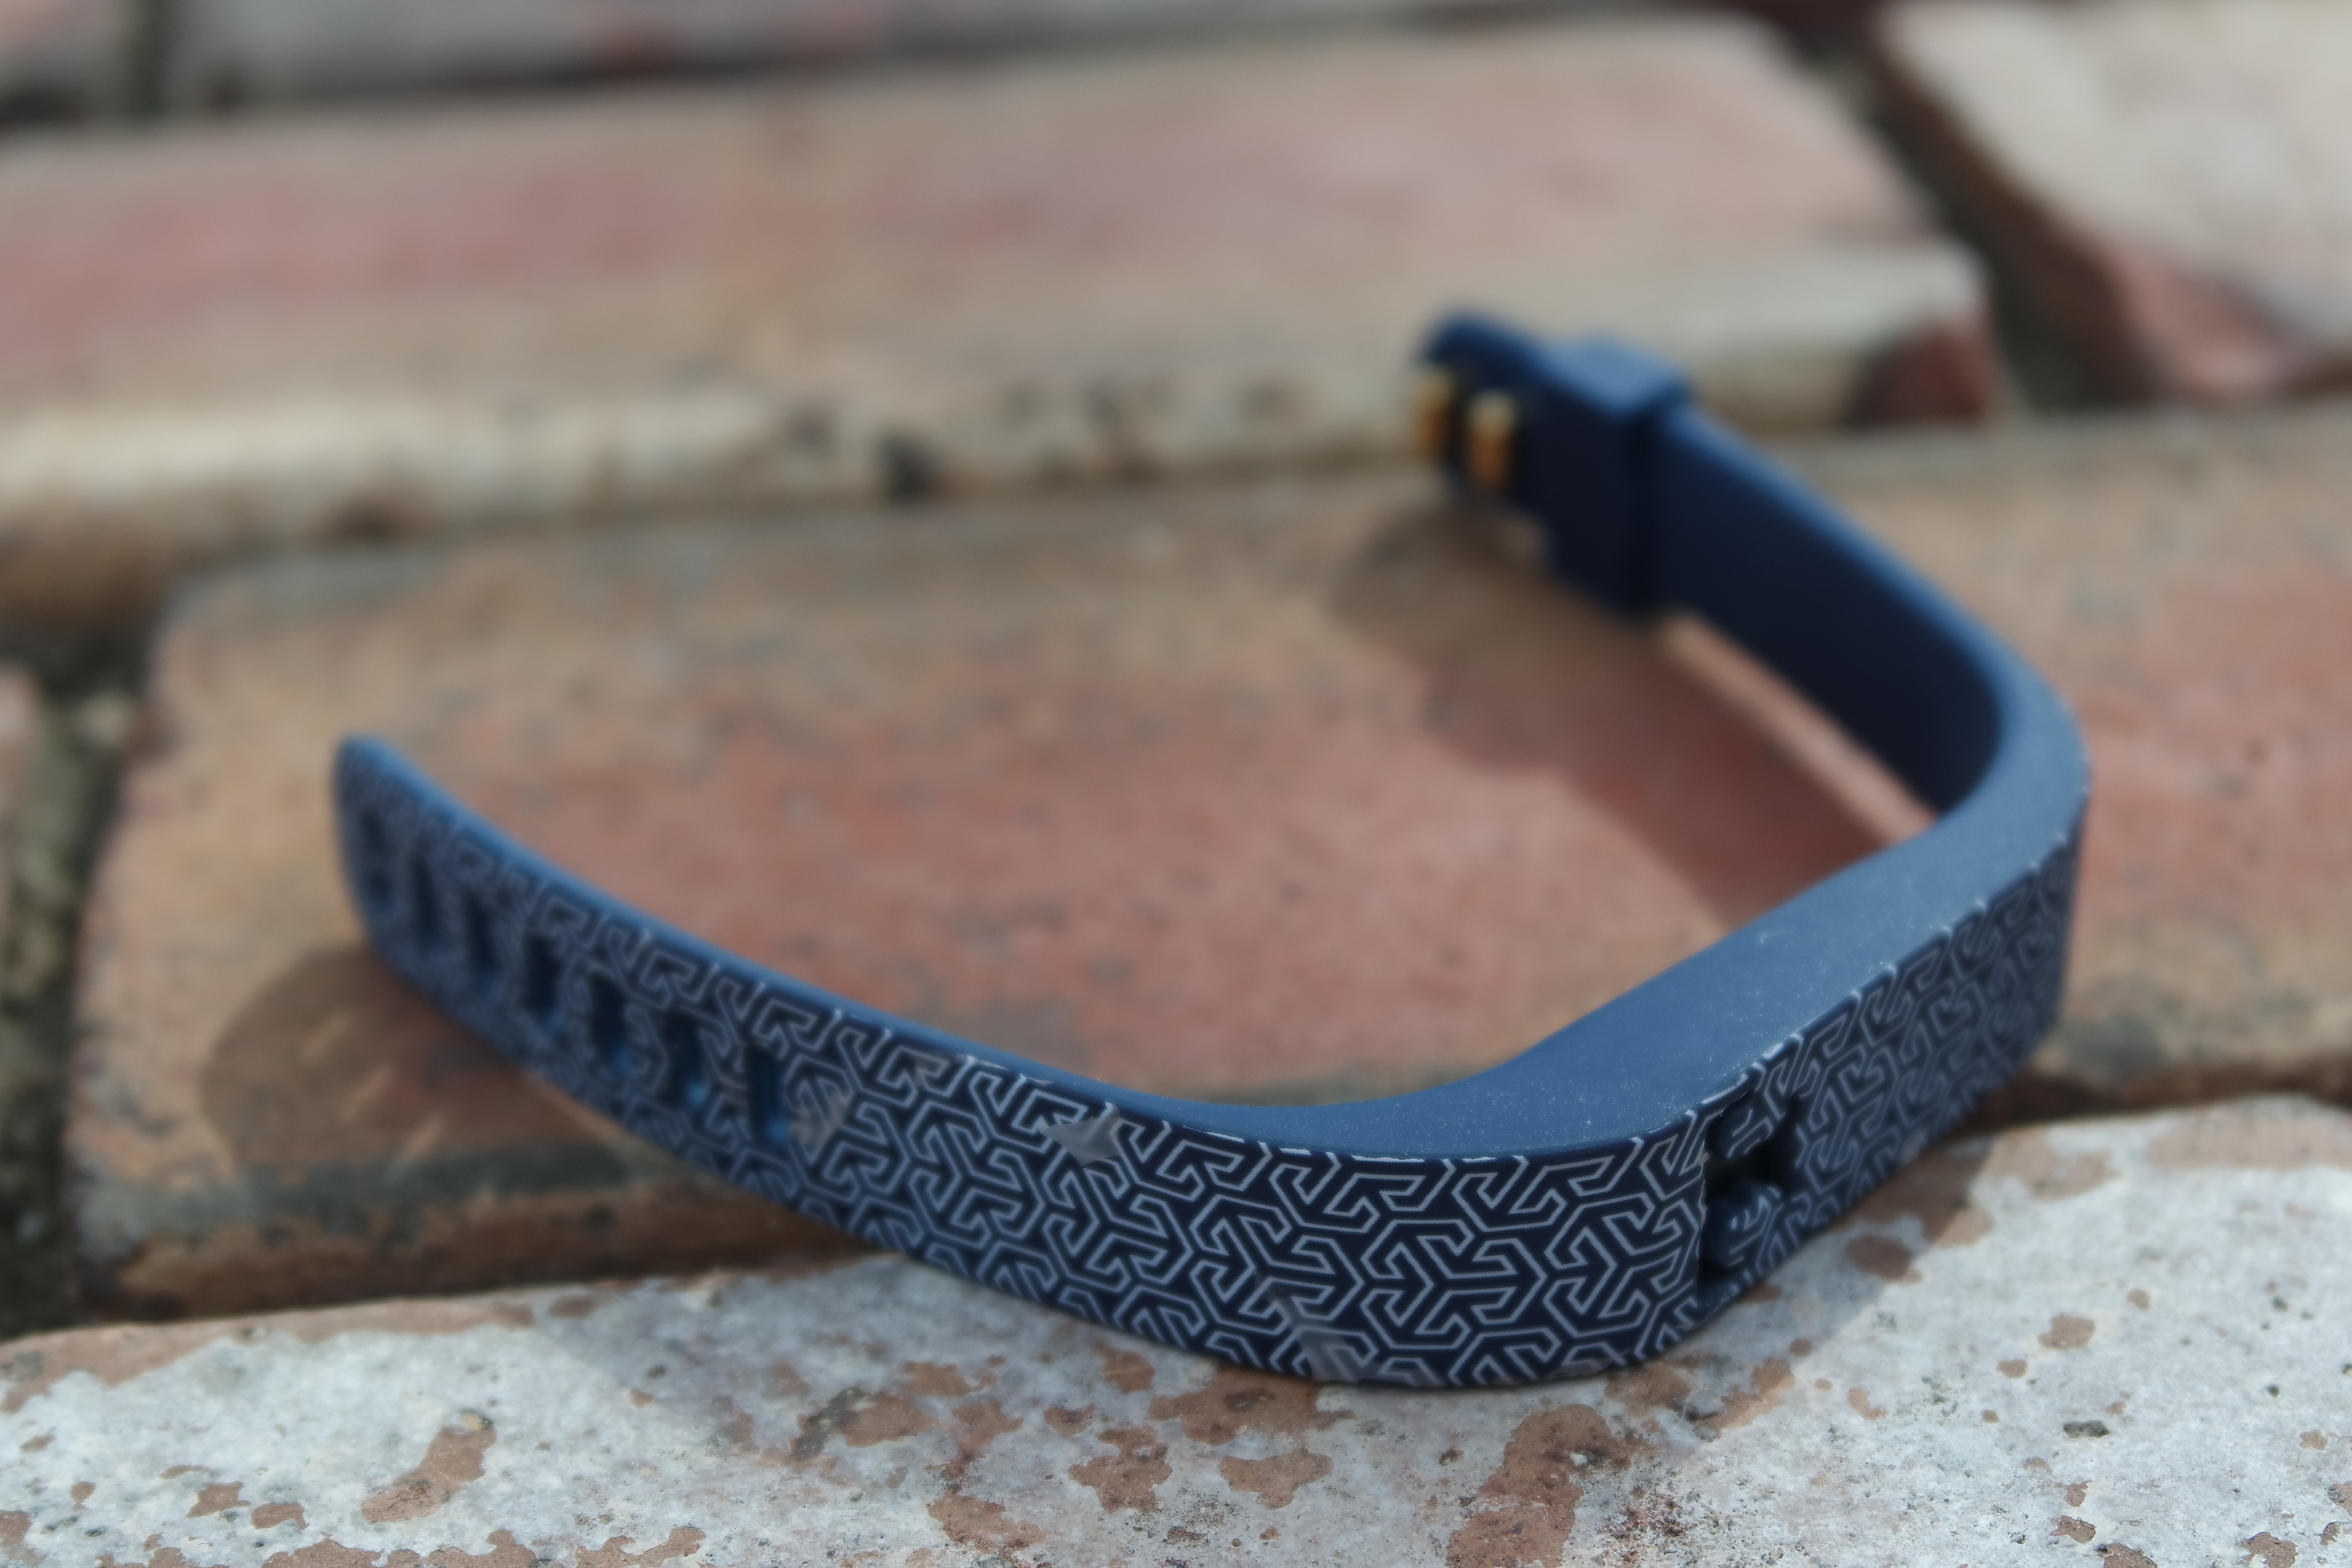 how to clean my fitbit band